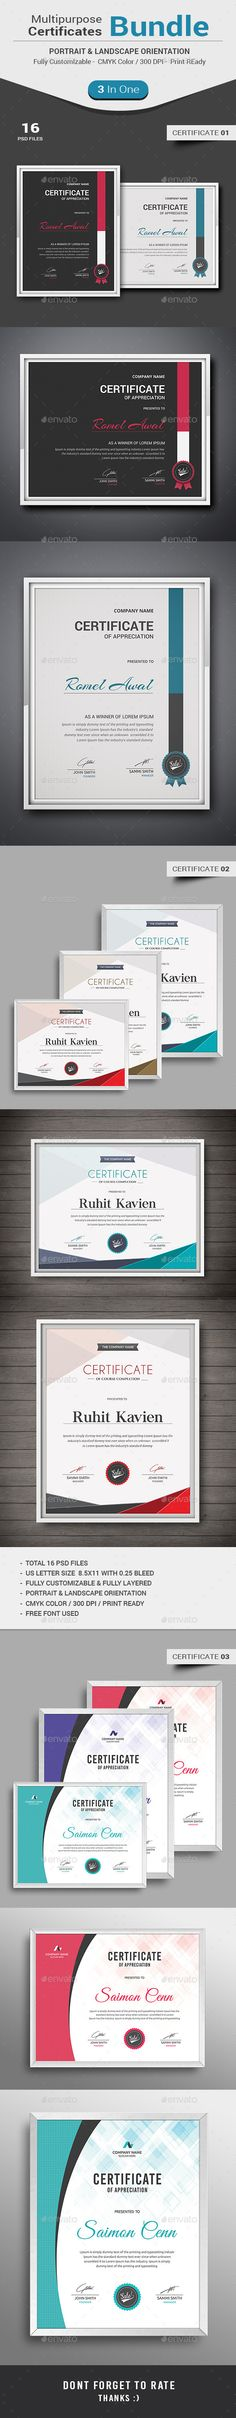 Multipurpose Certificates Template PSD Bundle. Download here: http://graphicriver.net/item/multipurpose-certificates-bundle-/13183388?ref=ksioks